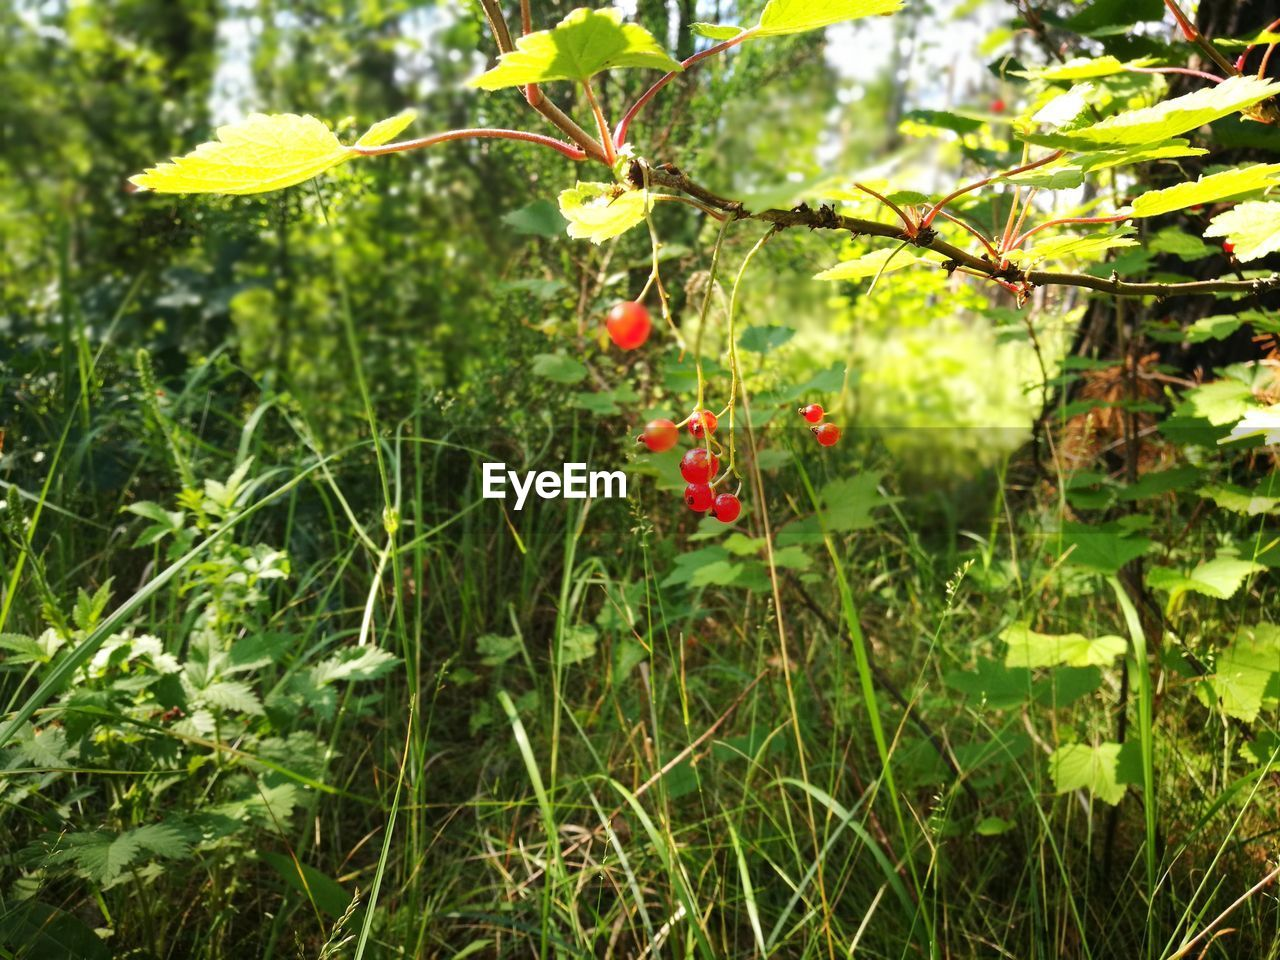 growth, nature, red, outdoors, focus on foreground, plant, day, leaf, tree, no people, beauty in nature, freshness, close-up, flower